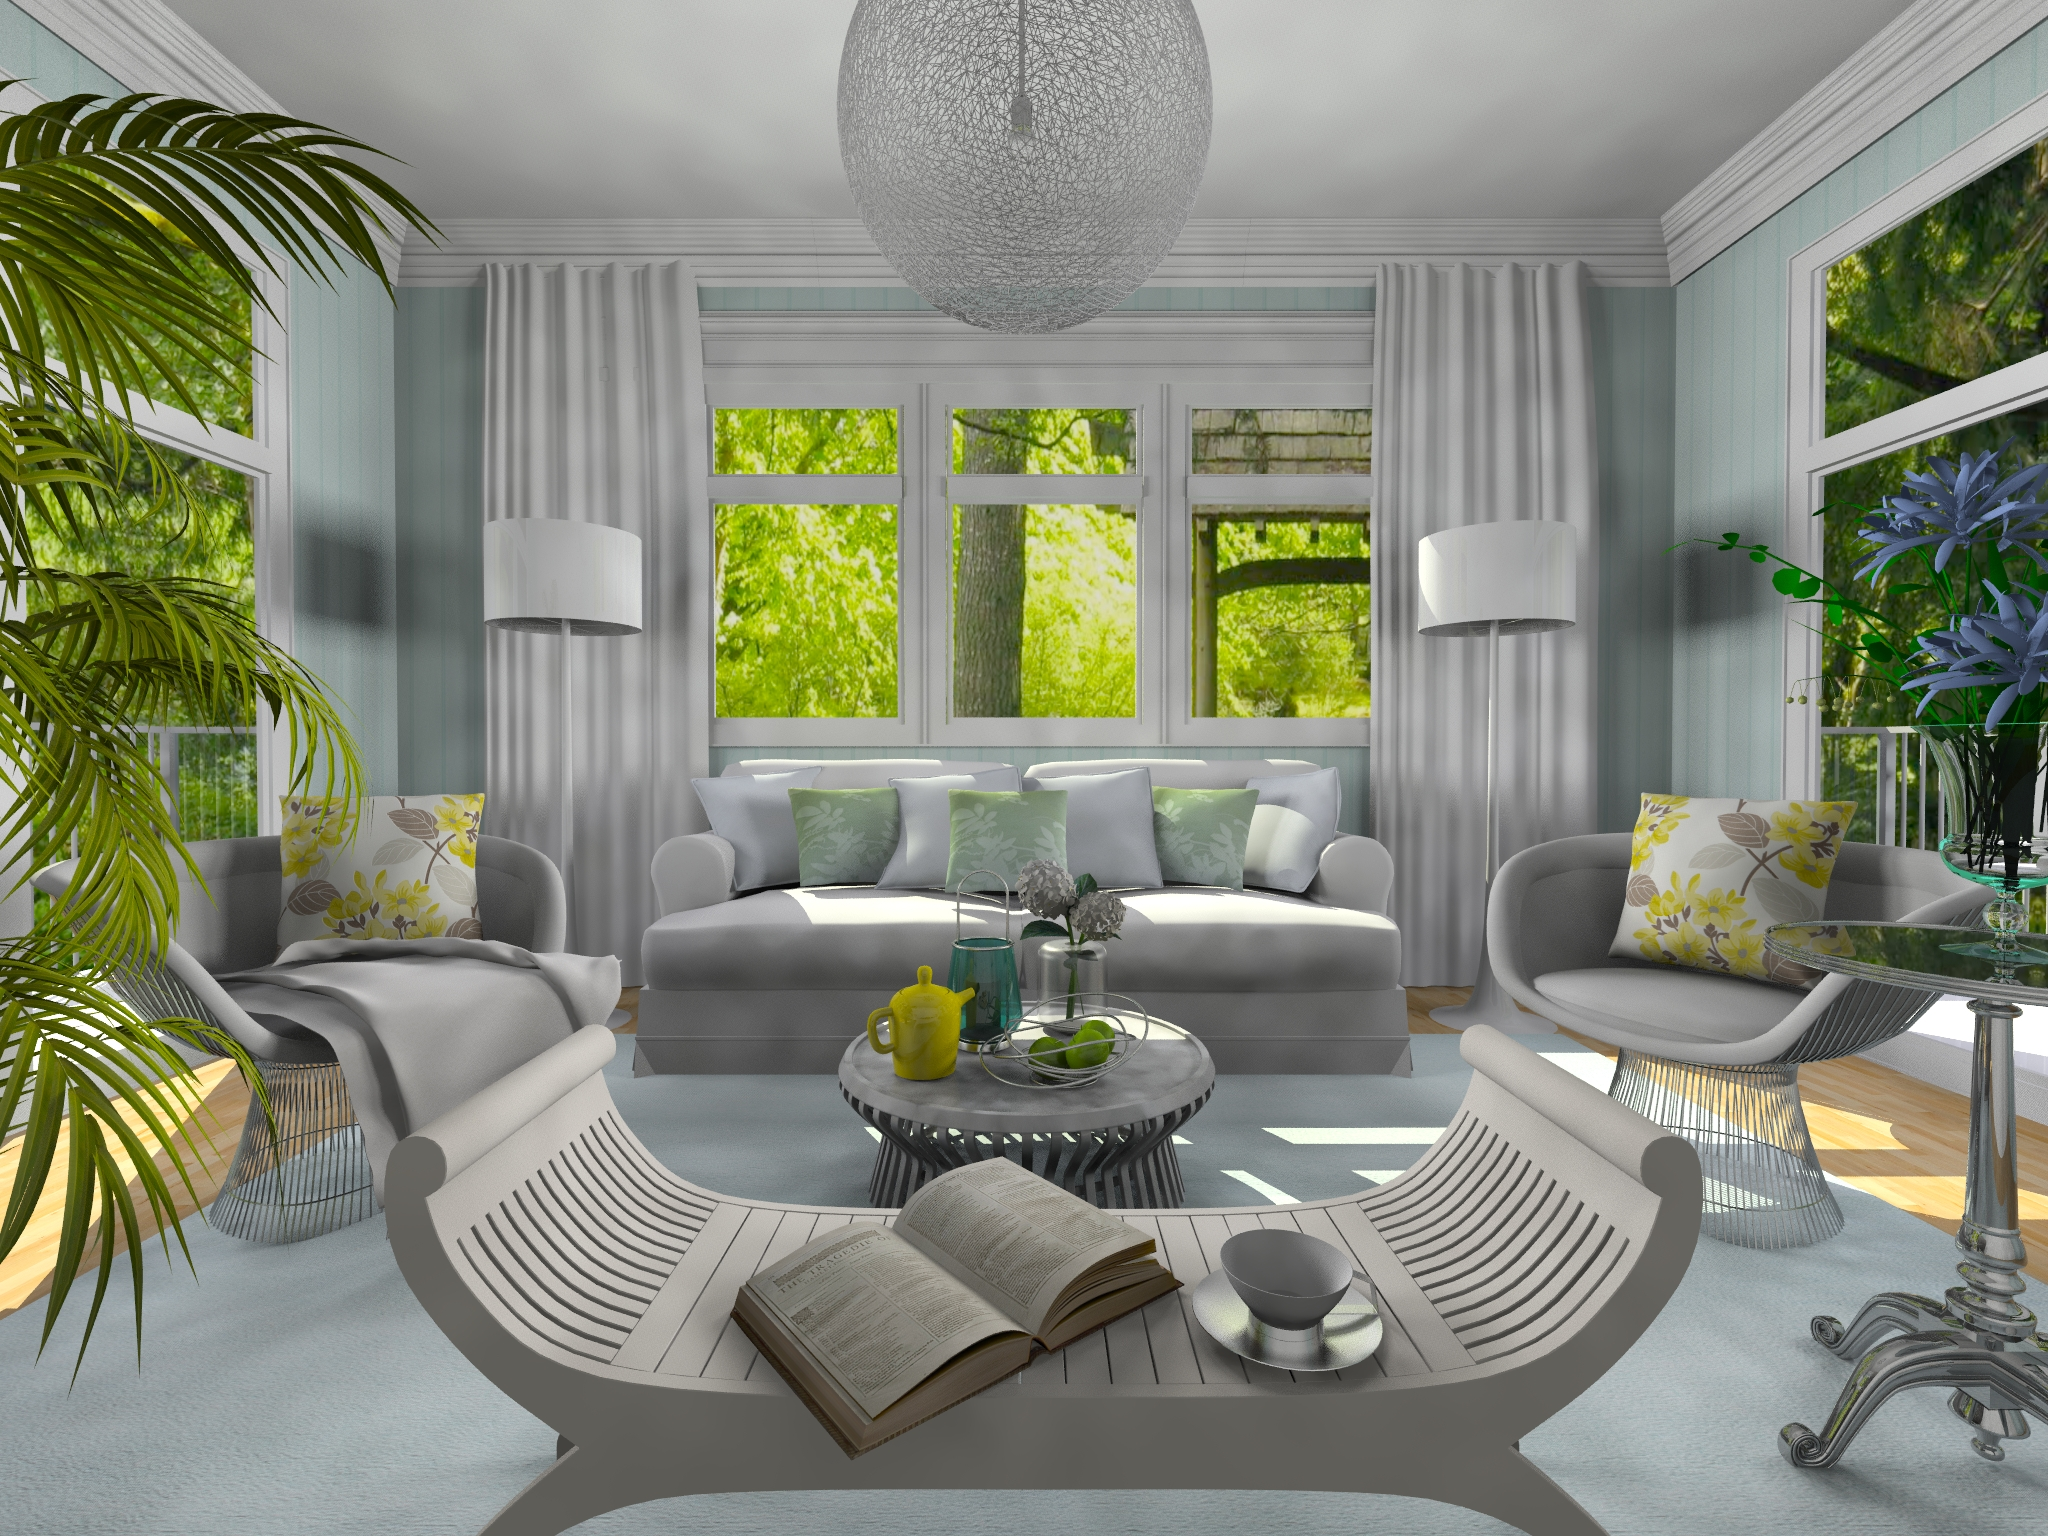 Interiors Made With Roomstyler. Download All Interiors